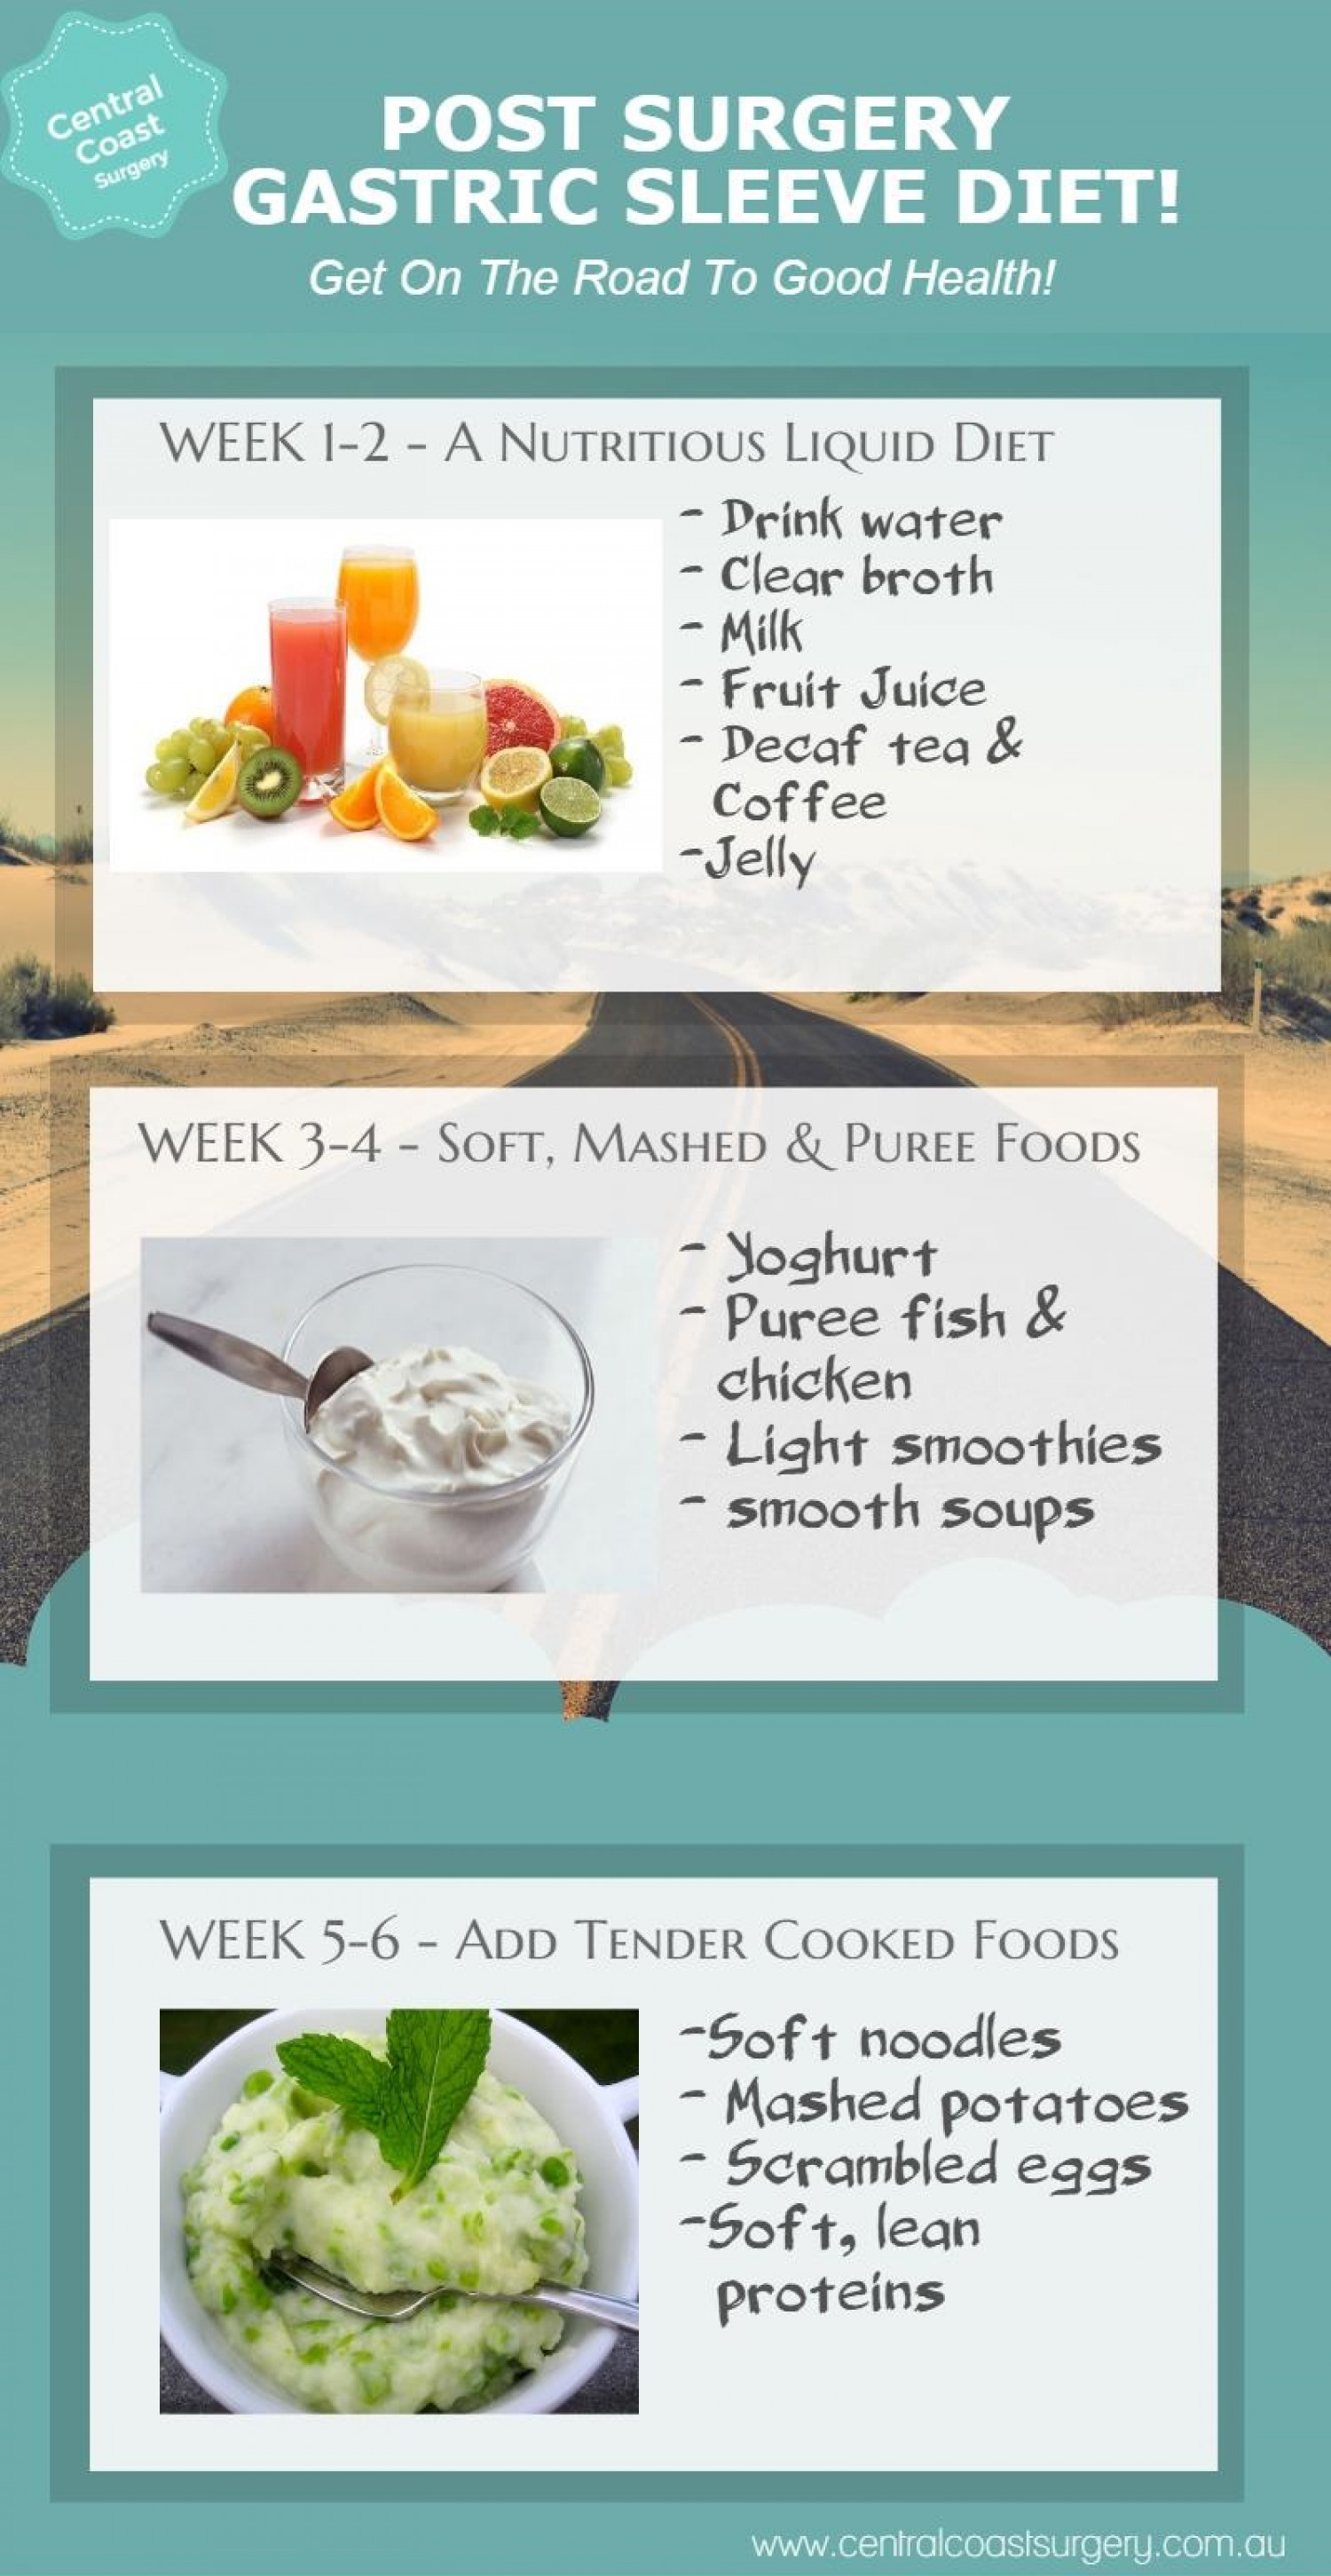 Post Surgery Gastric Sleeve Diet Infographic